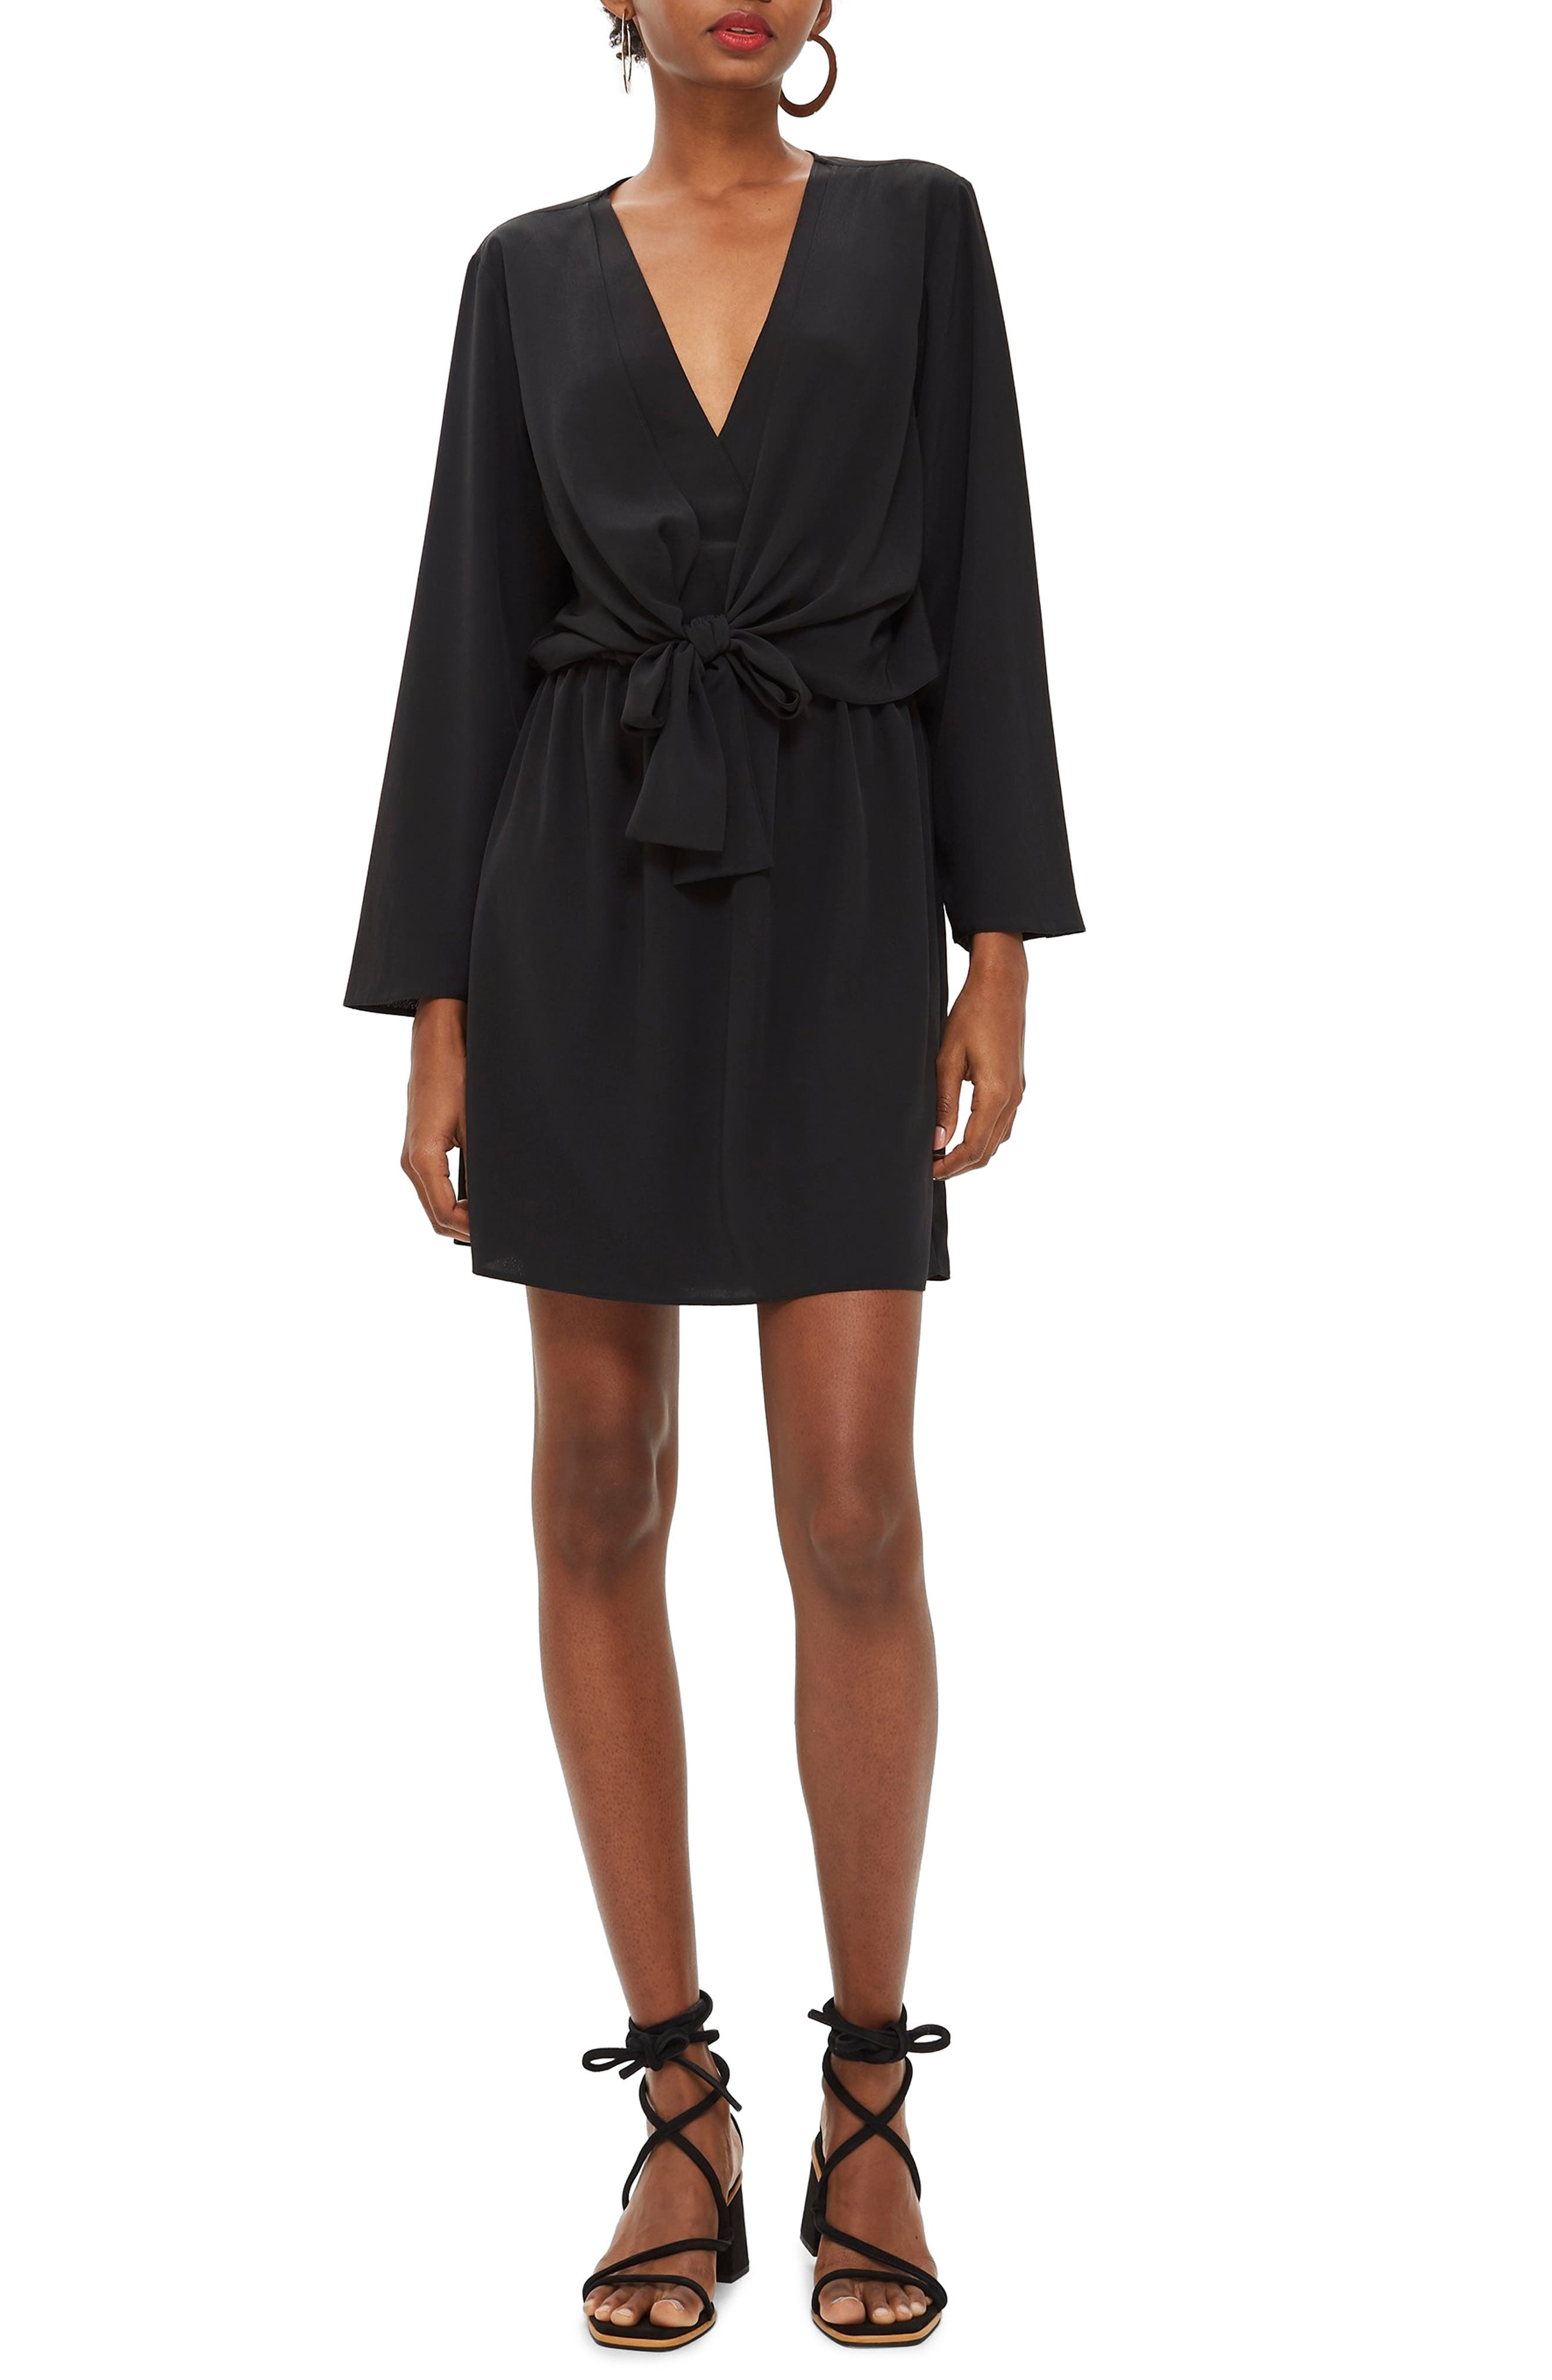 TOPSHOP, Tiffany Knot Minidress, Main thumbnail 1, color, BLACK